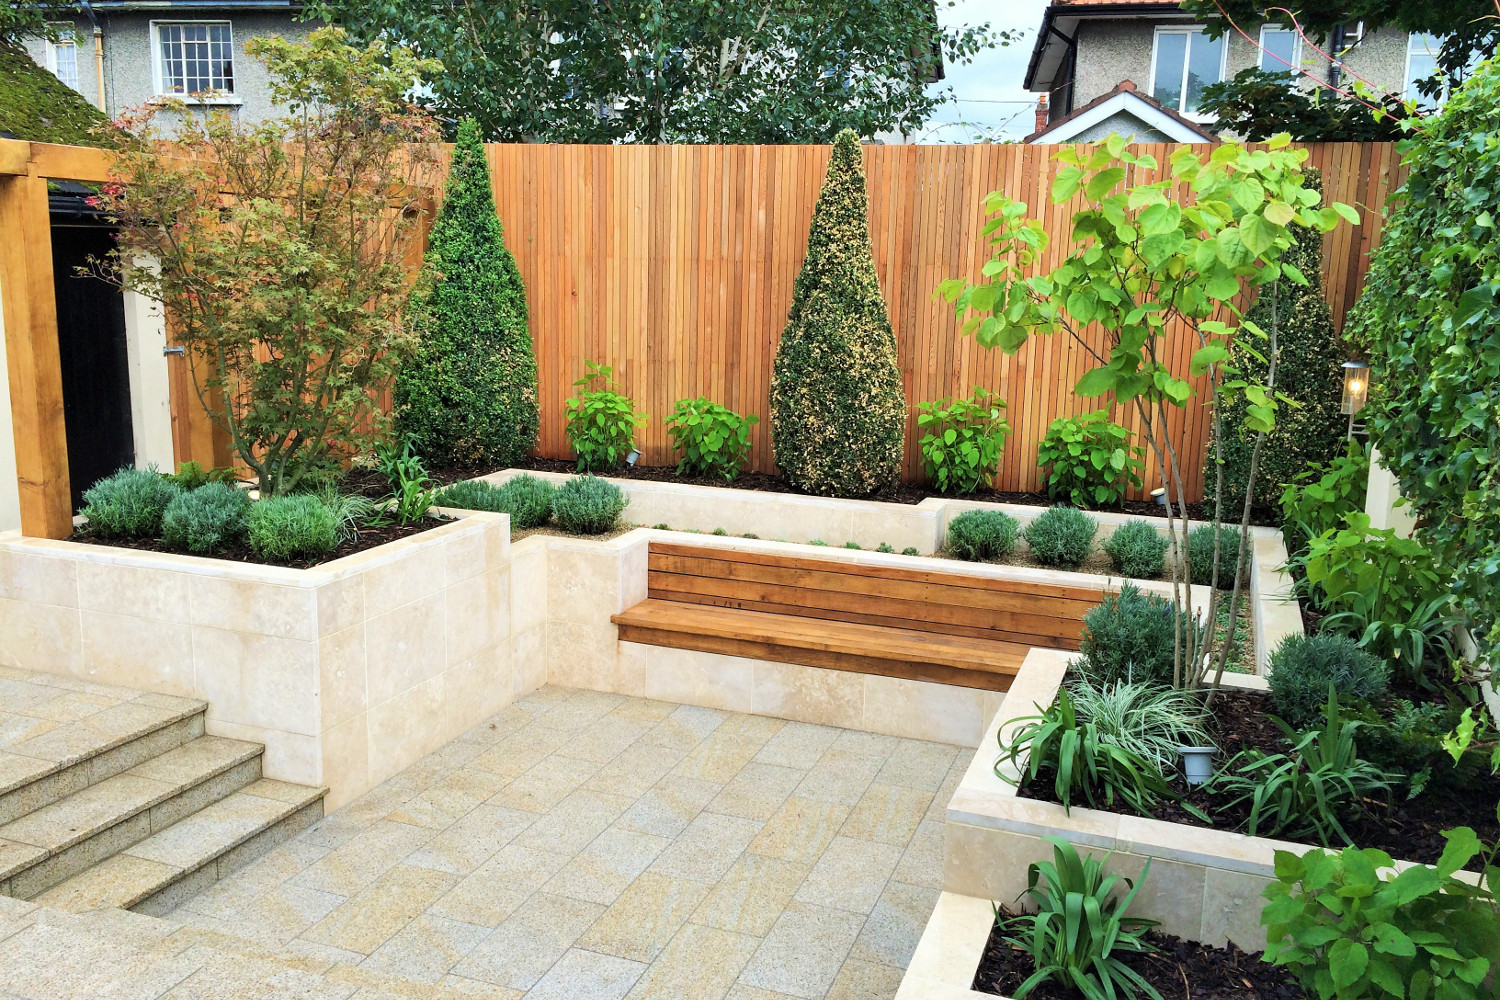 tim-austen-garden-design-stylish-sanctuary-glasnevin-7